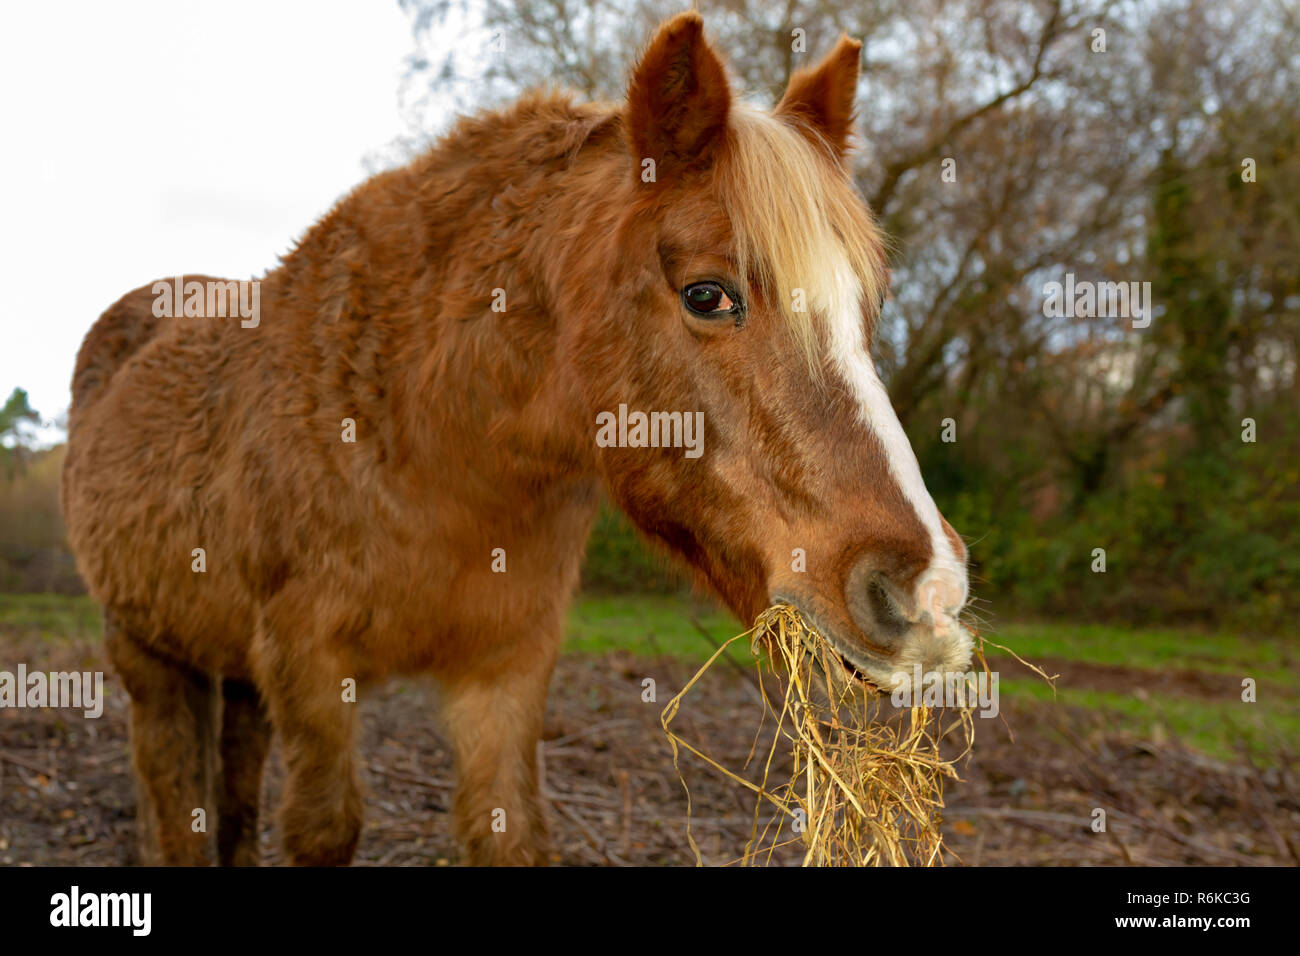 Portrait d'un animal de couleur brune cultivée avec de la paille de l'alimentation poney se balançant d'bouche. Photo Stock